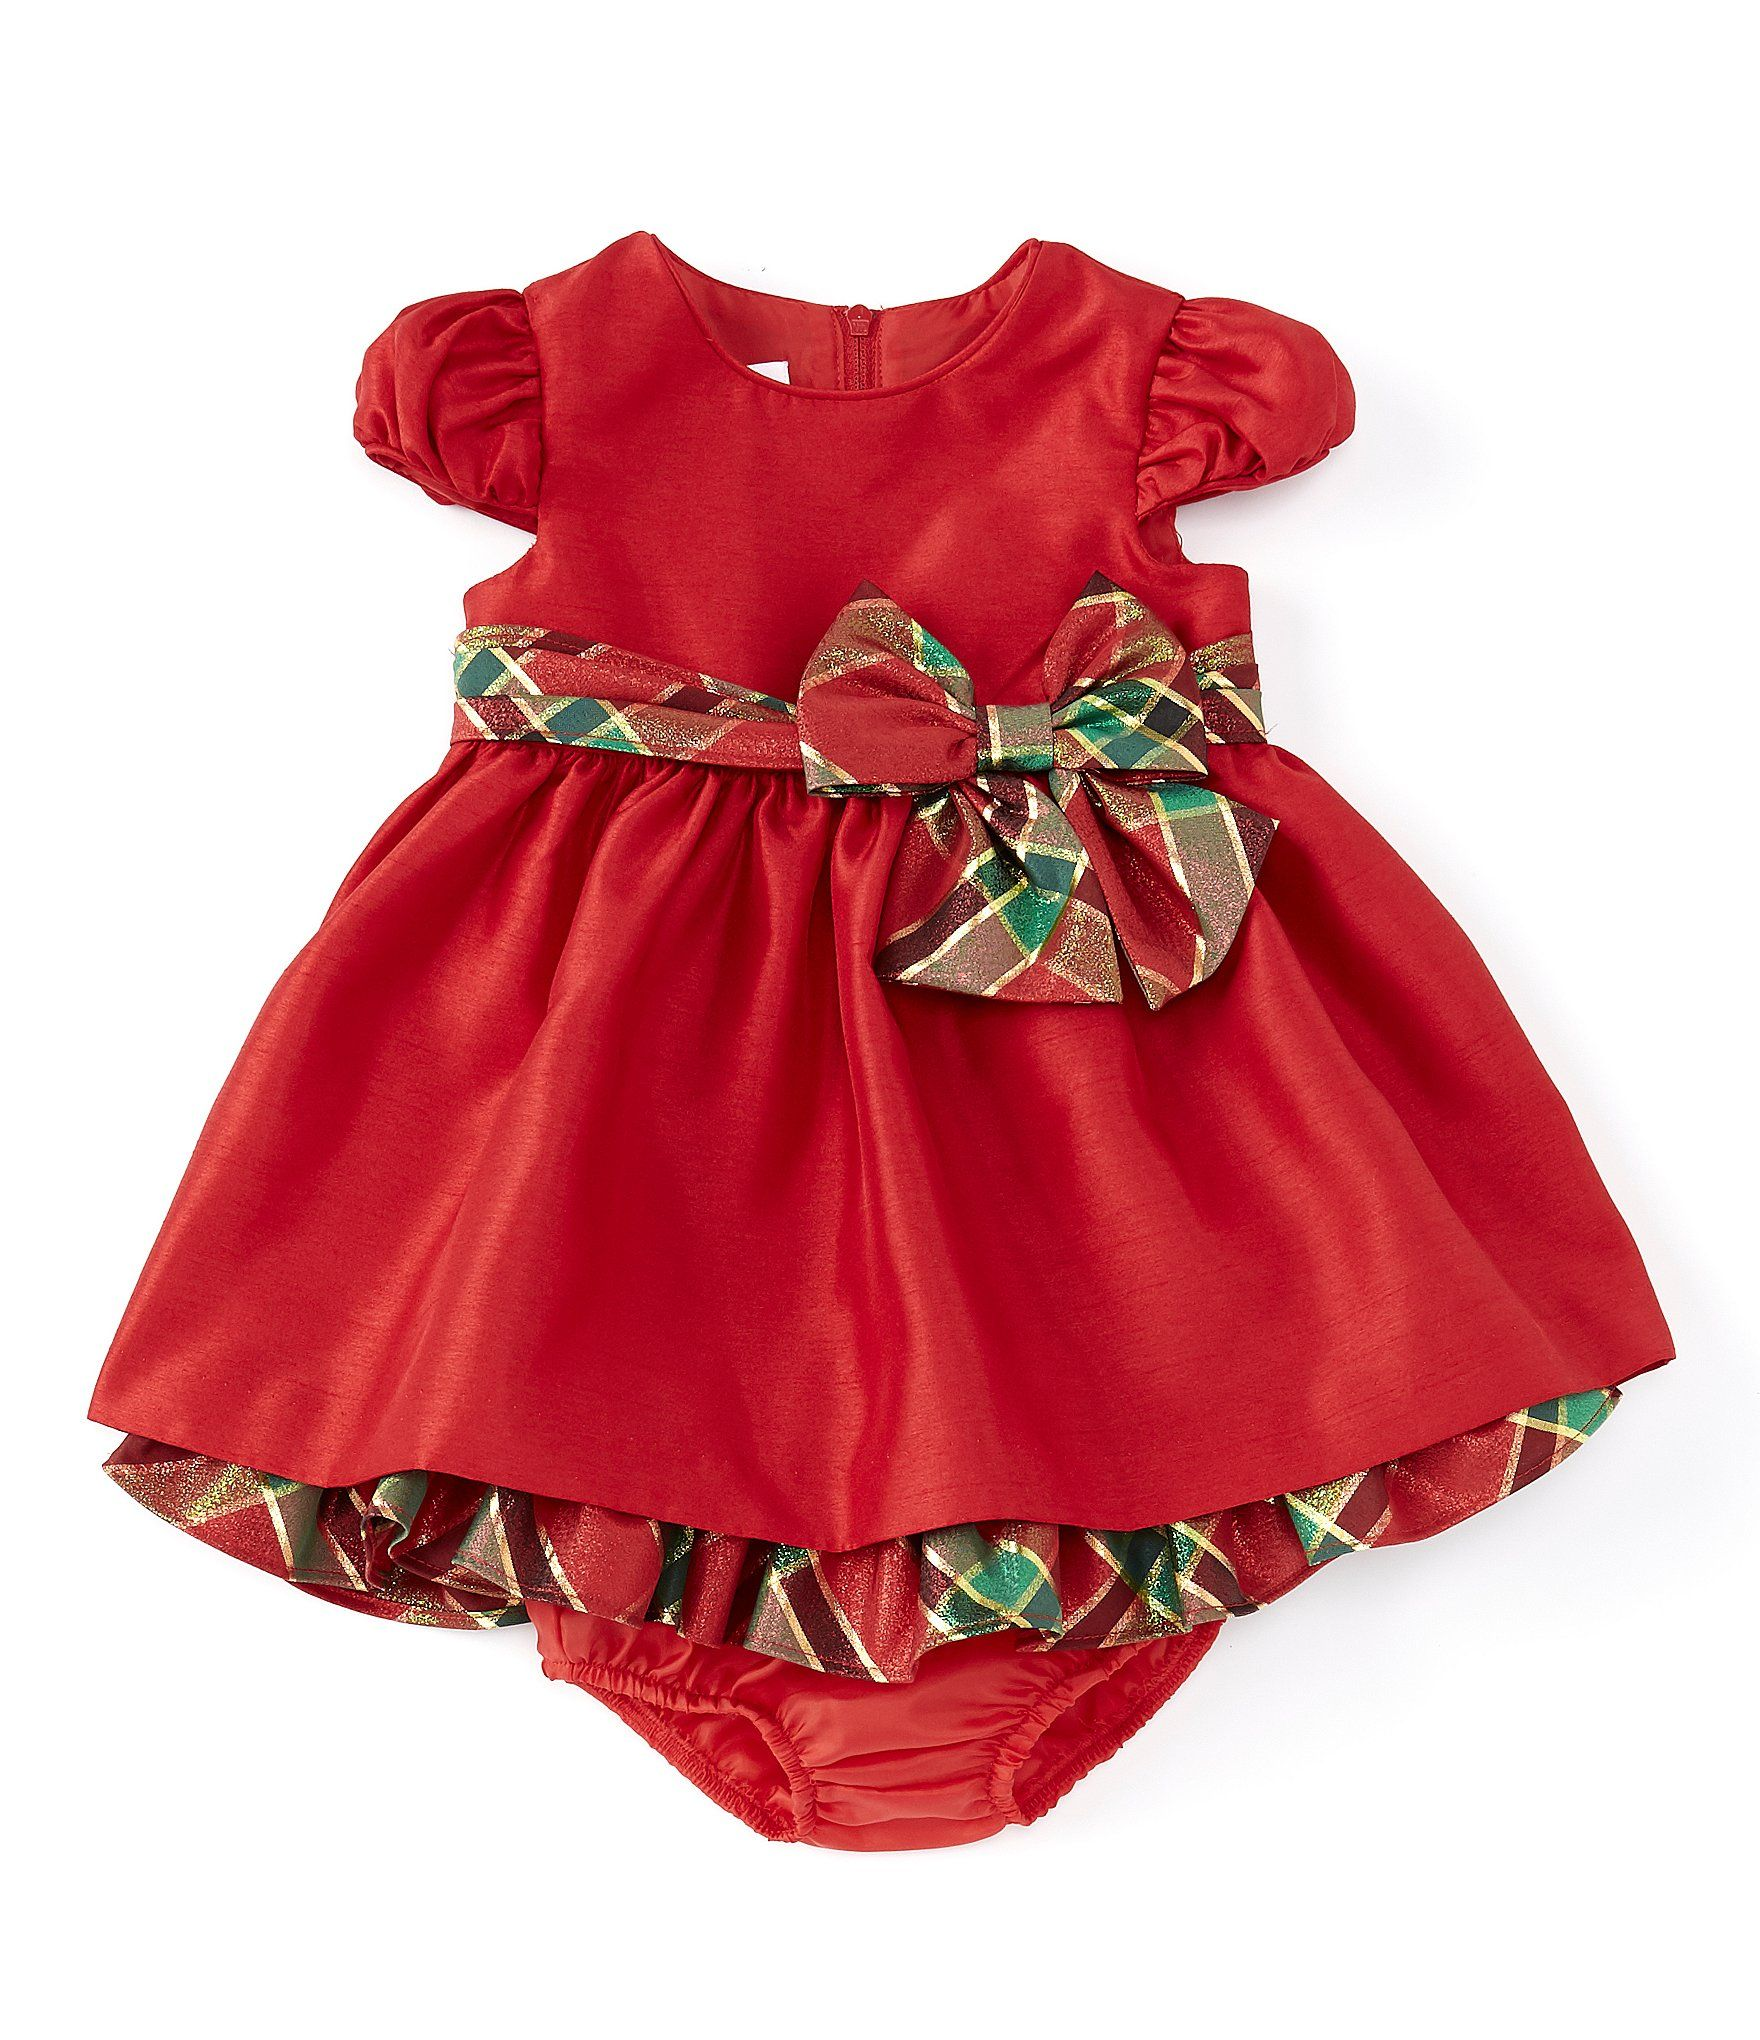 Bonnie Jean Baby Girls Newborn-24 Months Shantung Plaid Bow Fit & Flare Dress | Dillard's